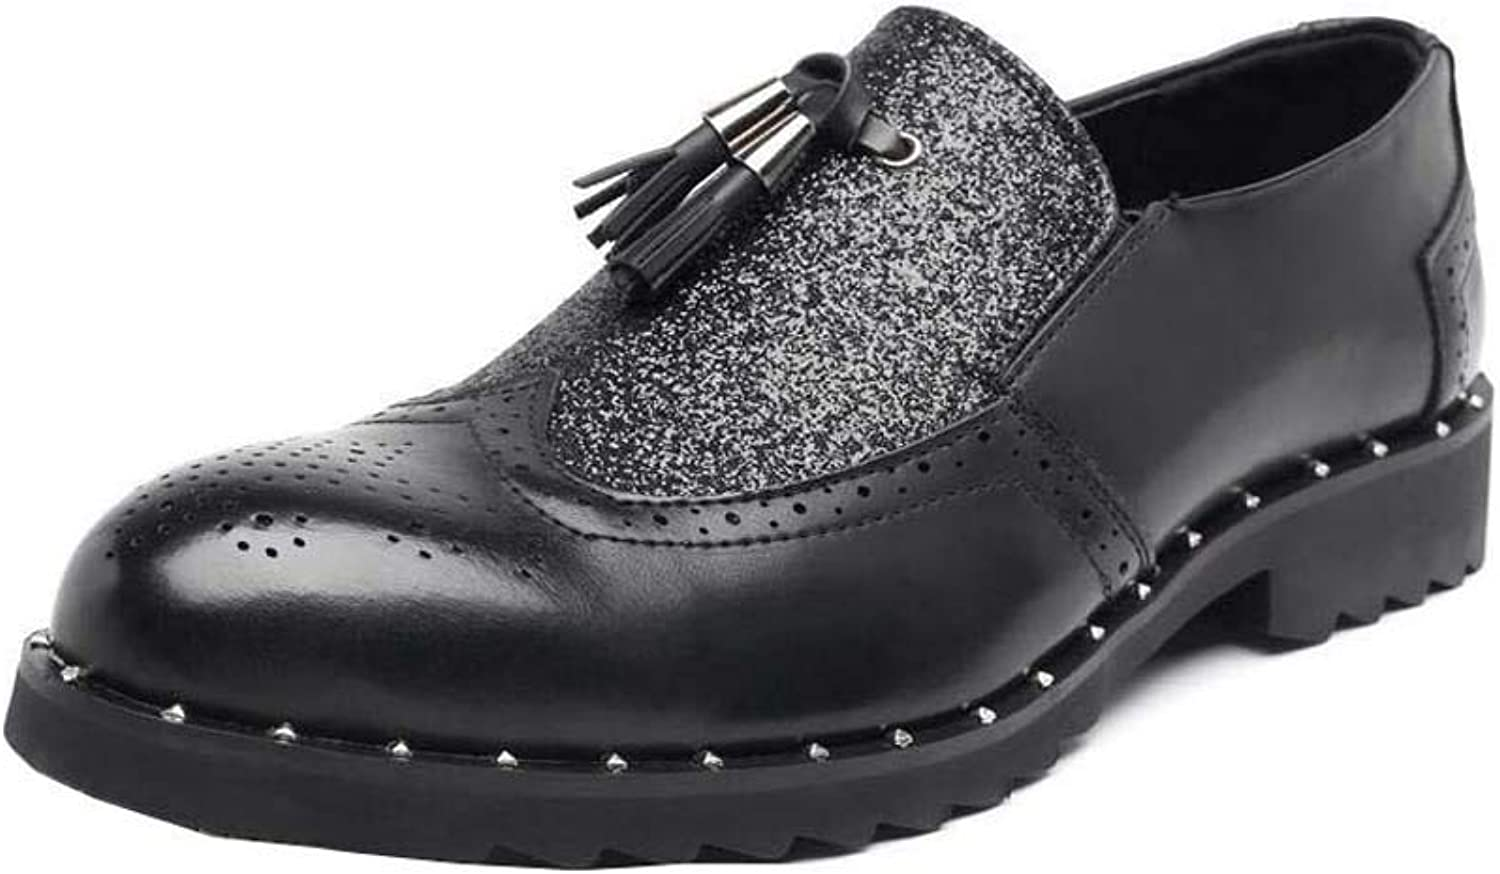 Men Pump Loafer Business Casual Leather shoes Round Toe Sequin Wedding Dress shoes Slip On Monk shoes Eu Size 38-43